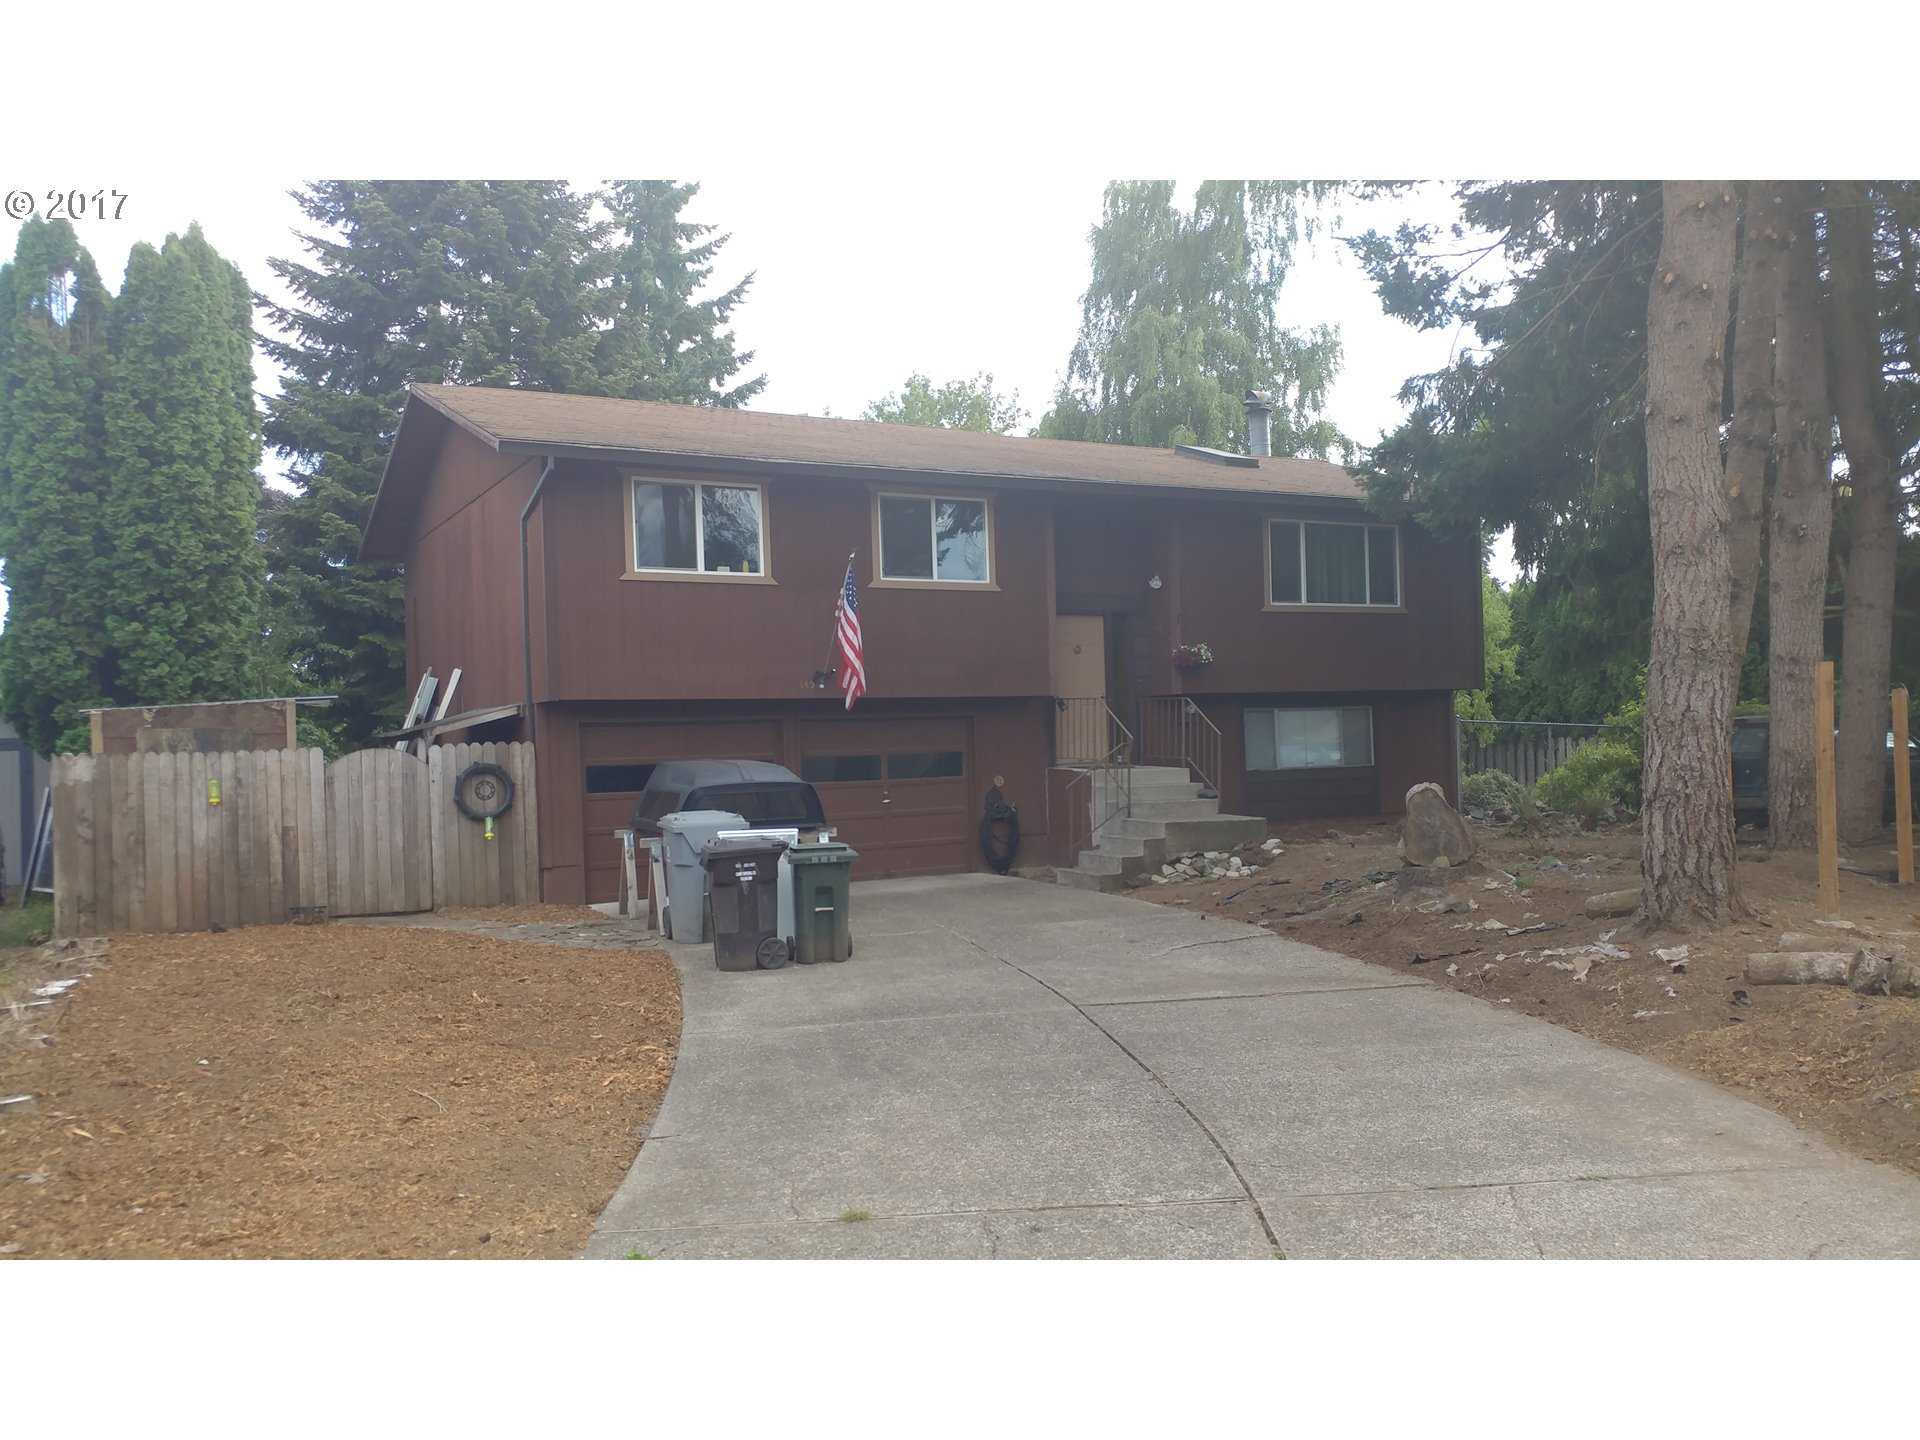 145 NW 14TH AVE, Canby, OR 97013